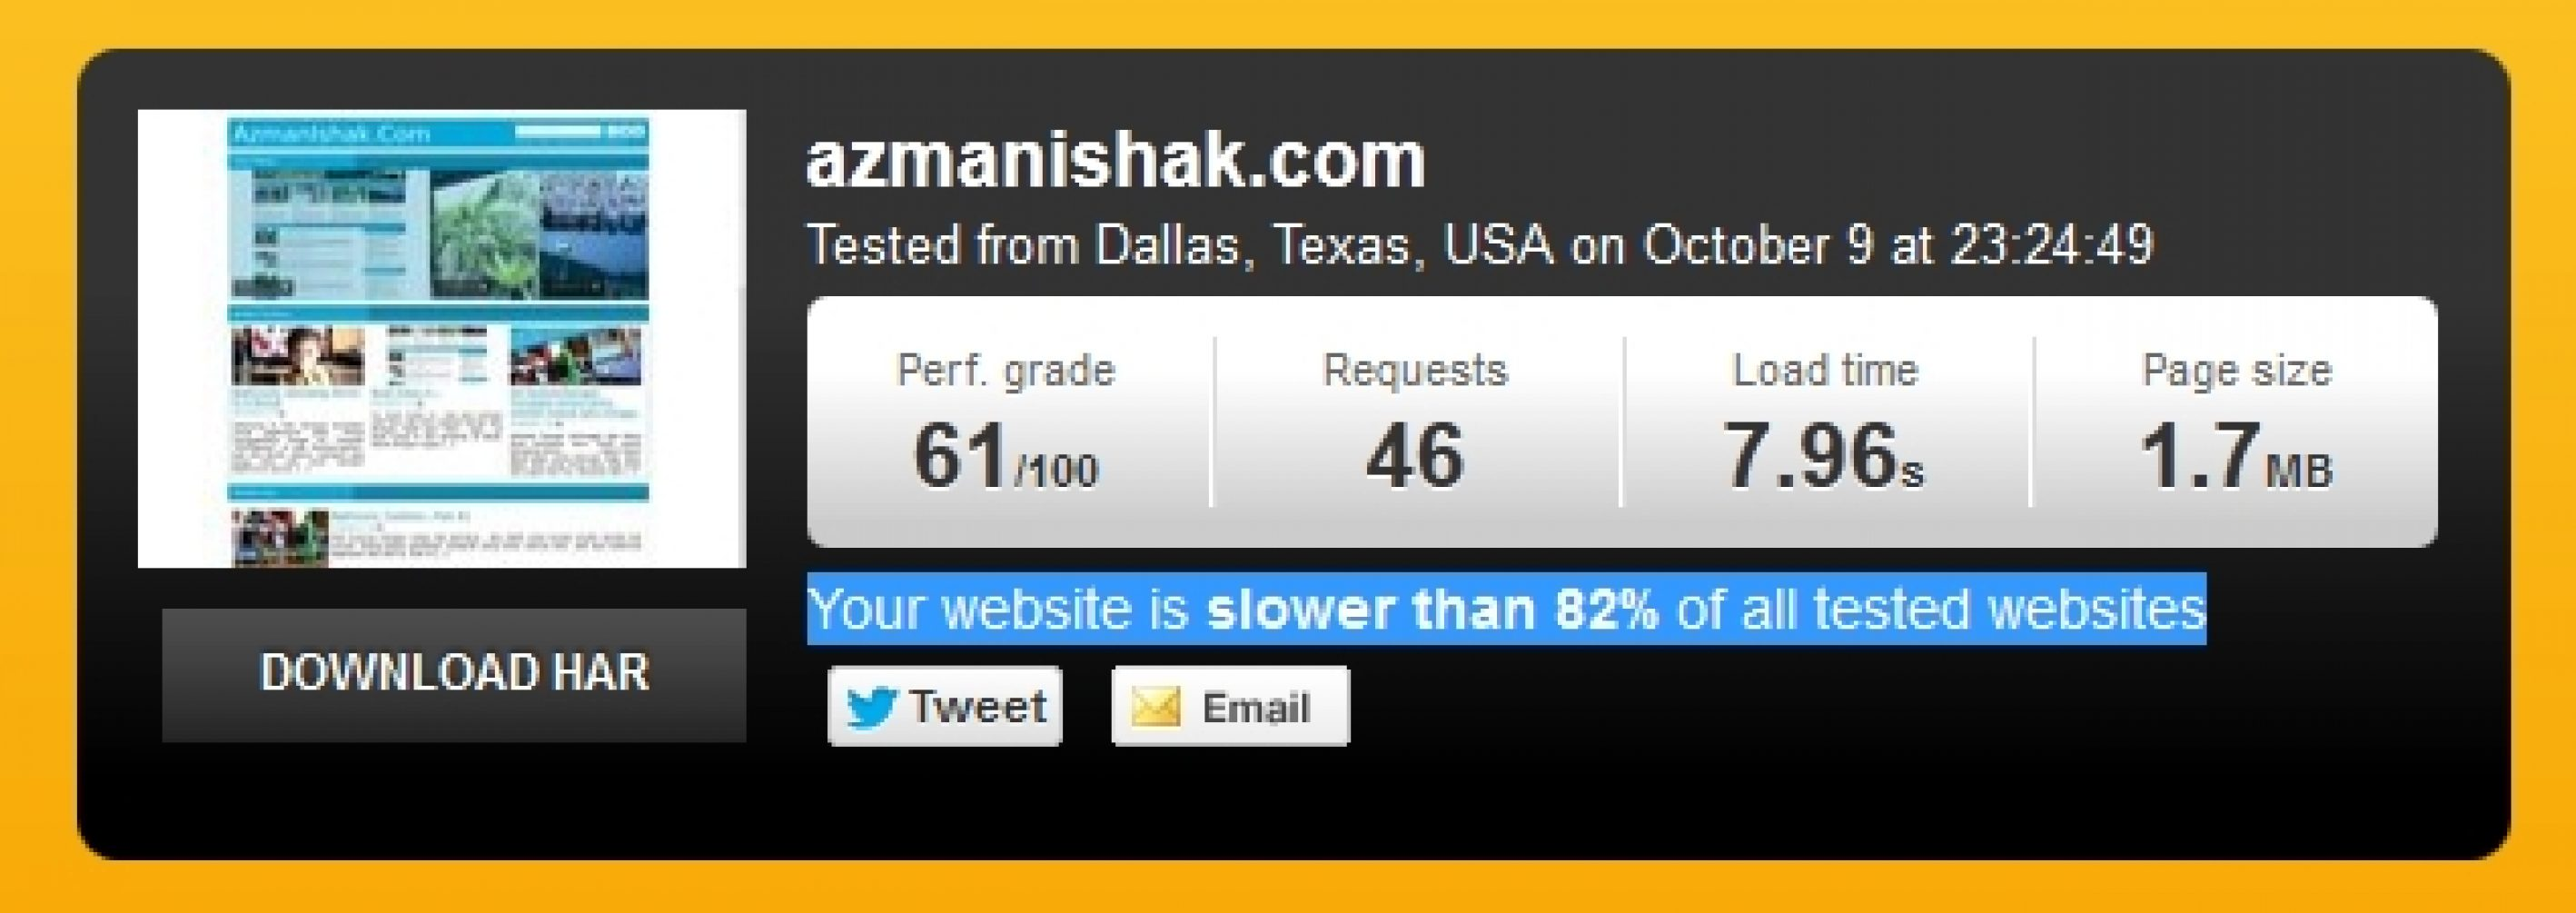 #WW – Your website is slower than 82% of all tested websites